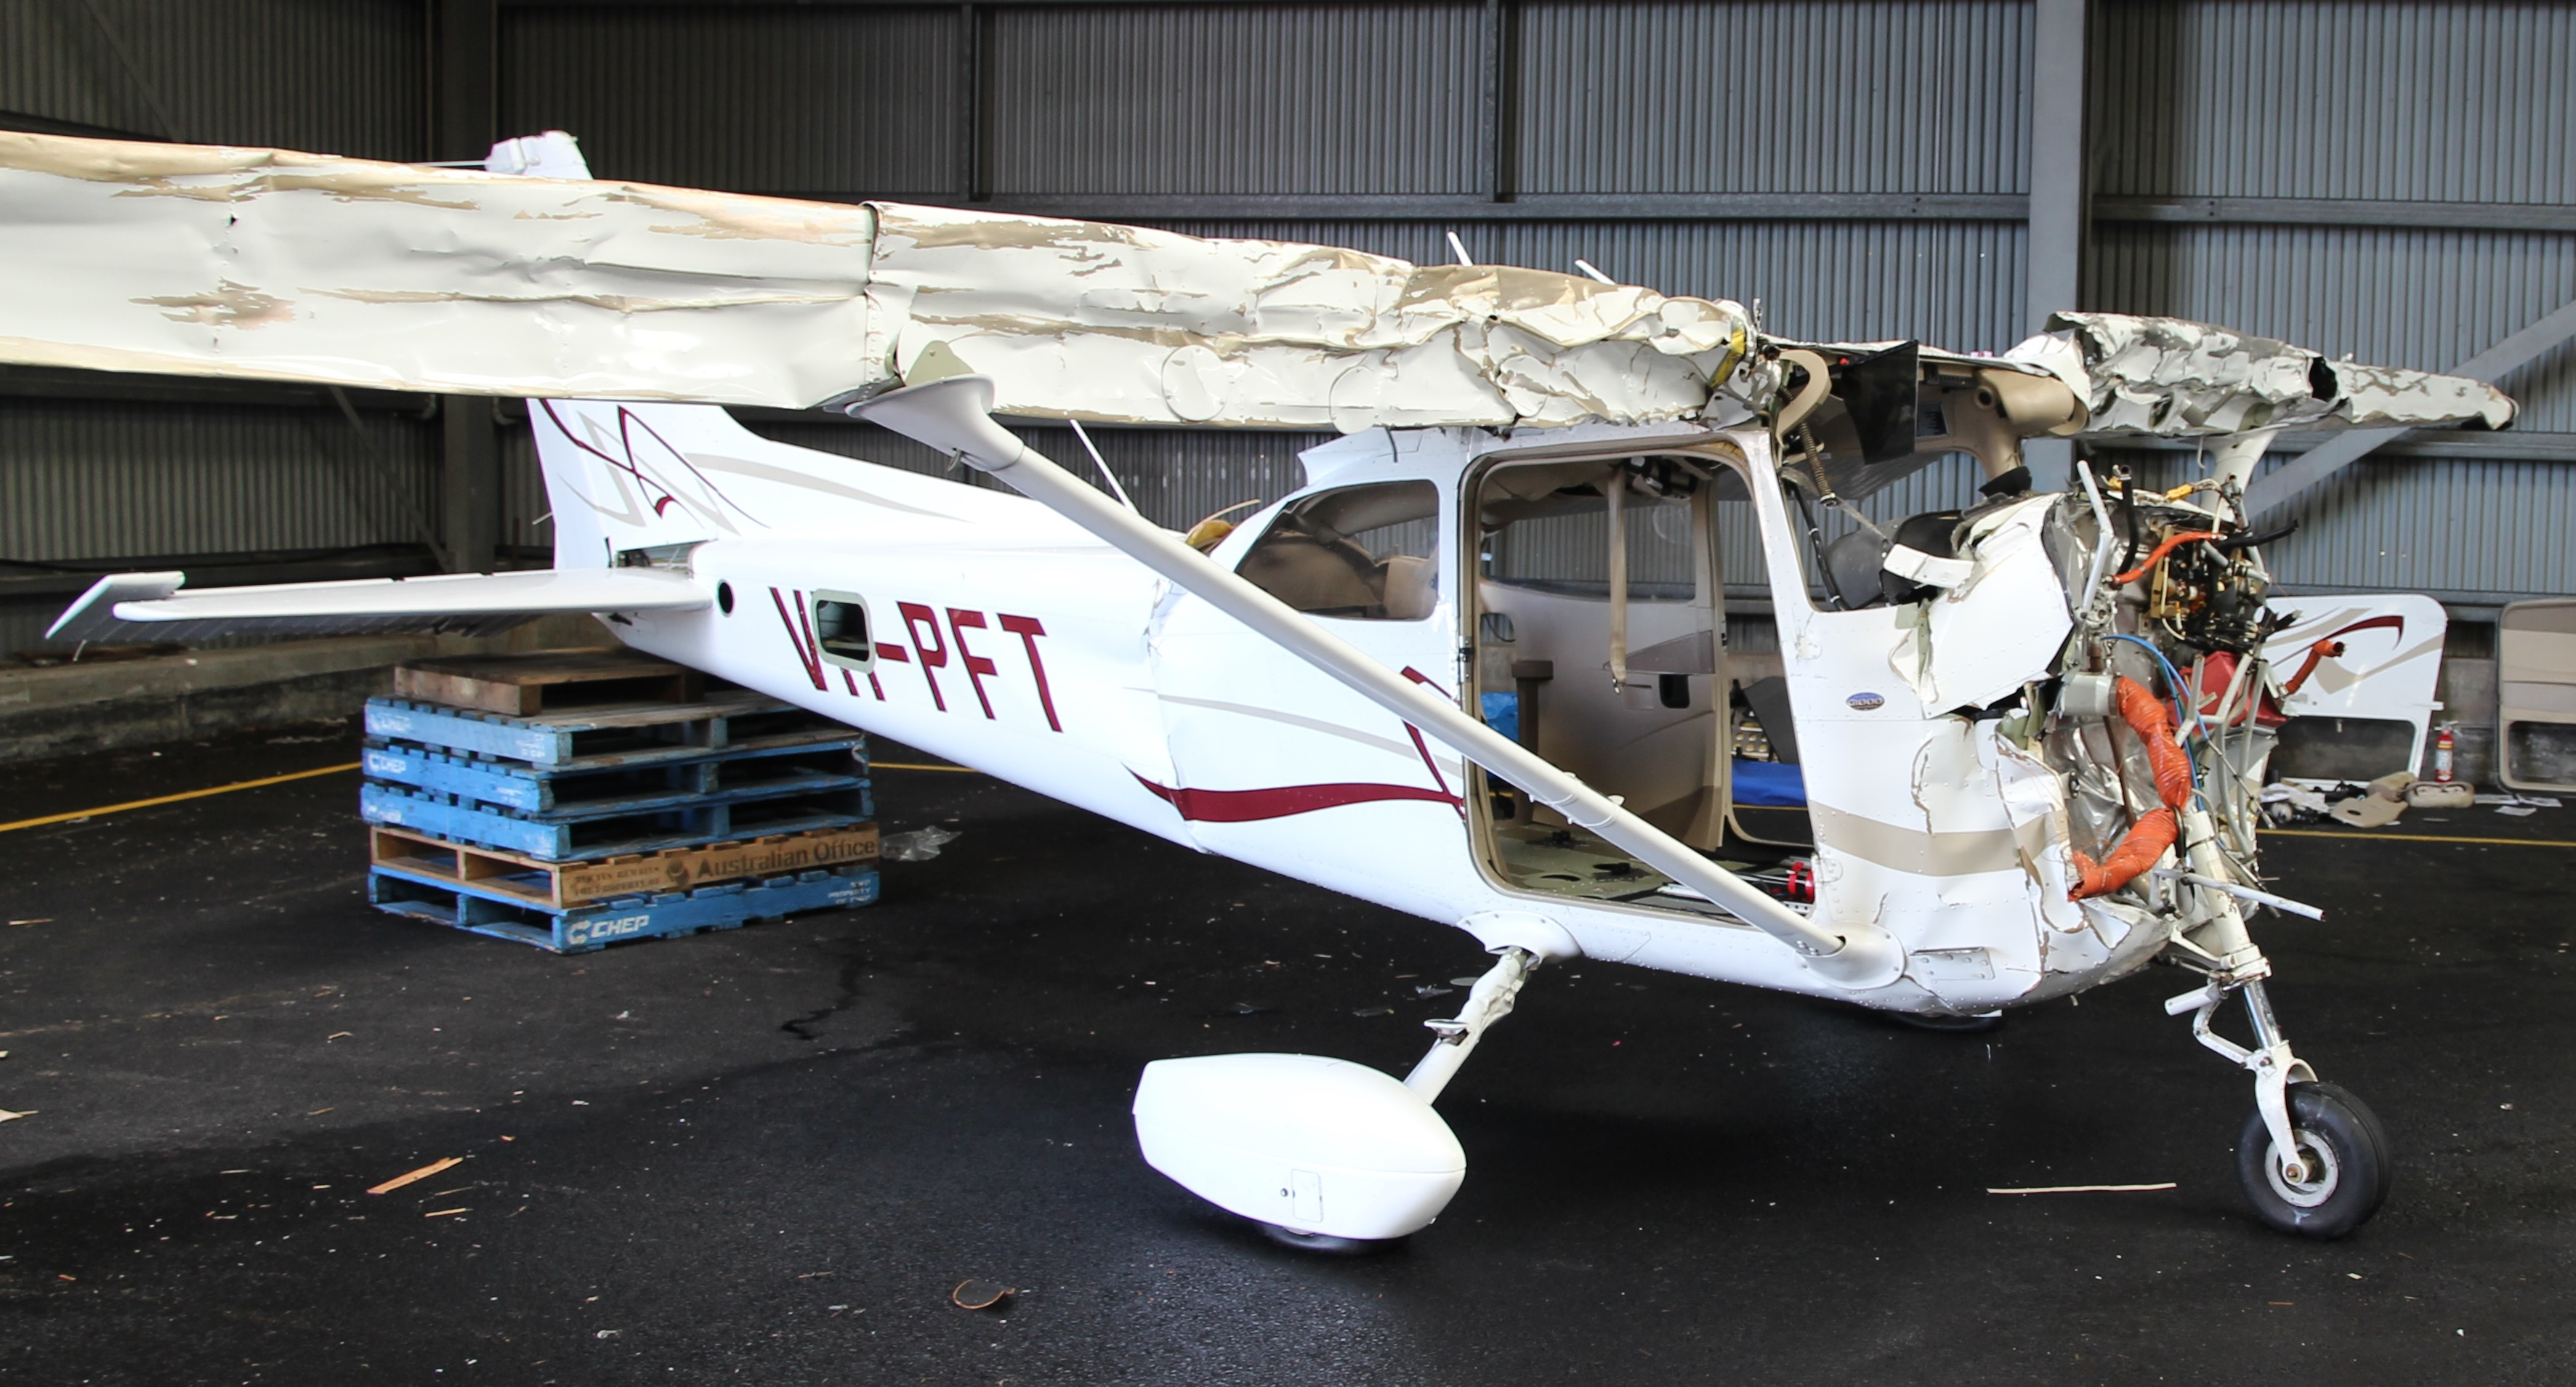 Figure 6: Aircraft wreckage after recovery